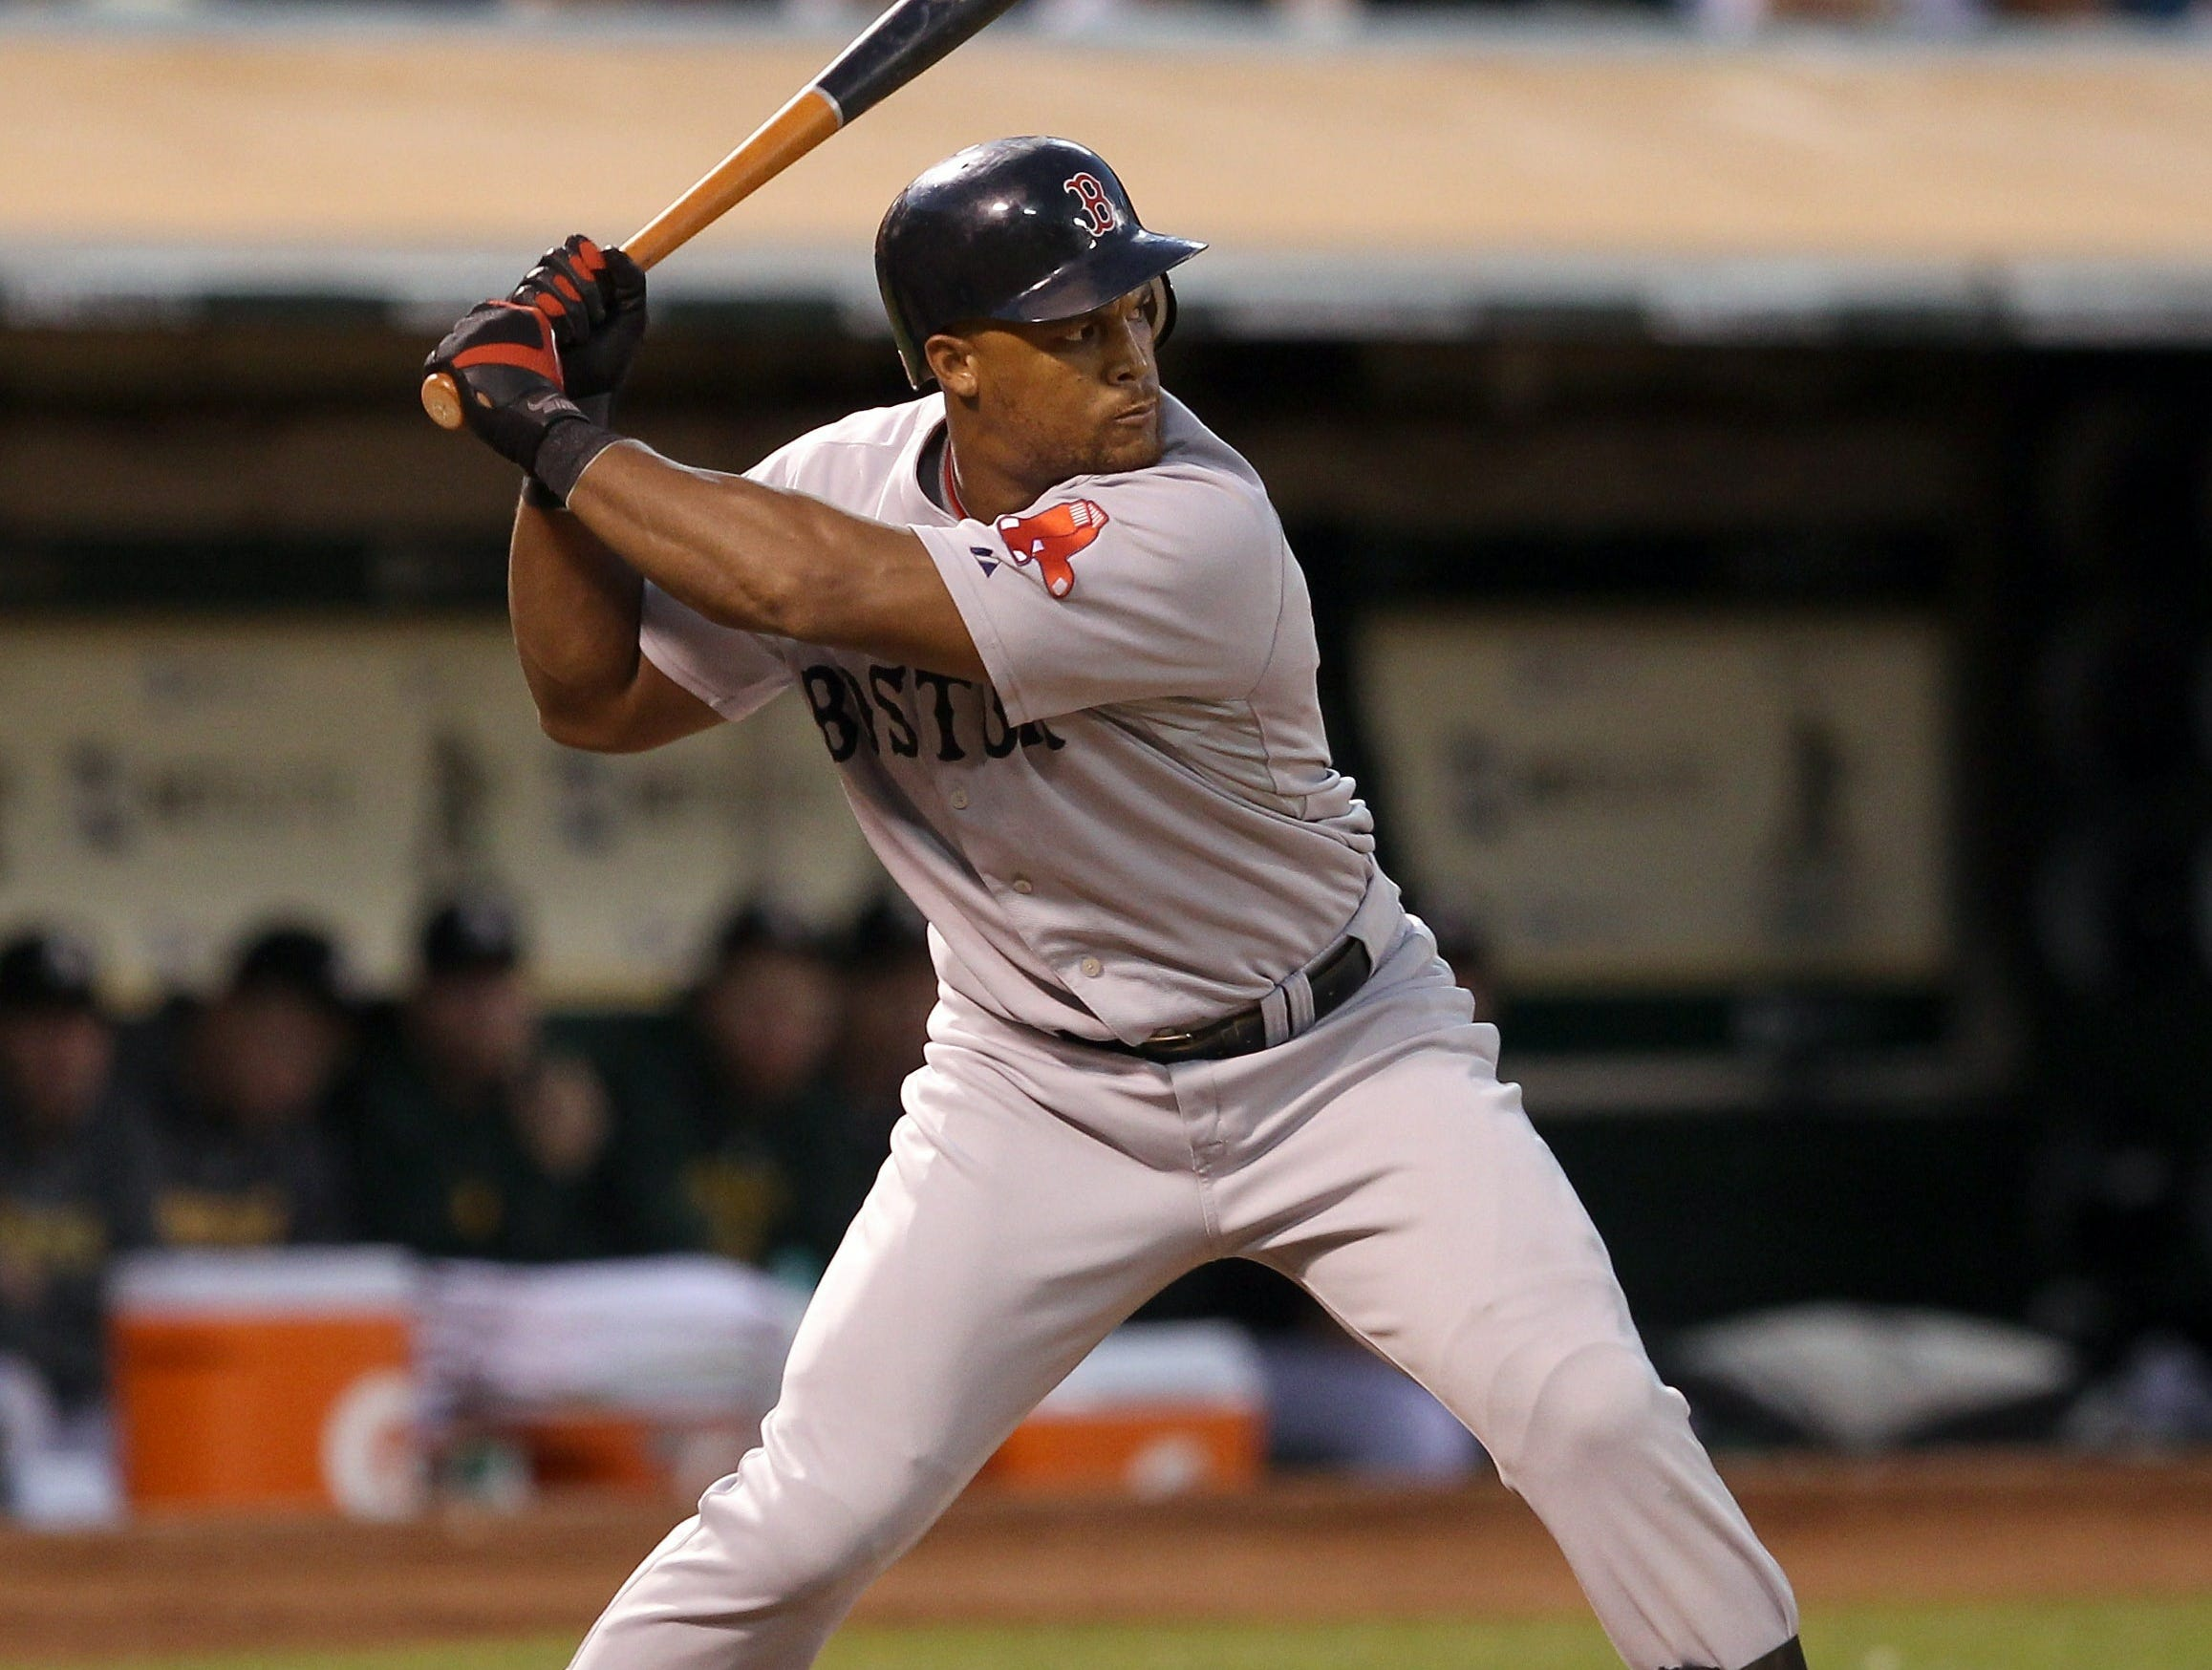 Beltre spent one year of his career in Boston, signing as a free agent after a down year in Seattle. The deal certainly paid off, as the third baseman led the league in doubles (49) while hitting .321 with 28 home runs and 102 RBI. The bounce-back season helped him net a five-year deal with Texas the following offseason.